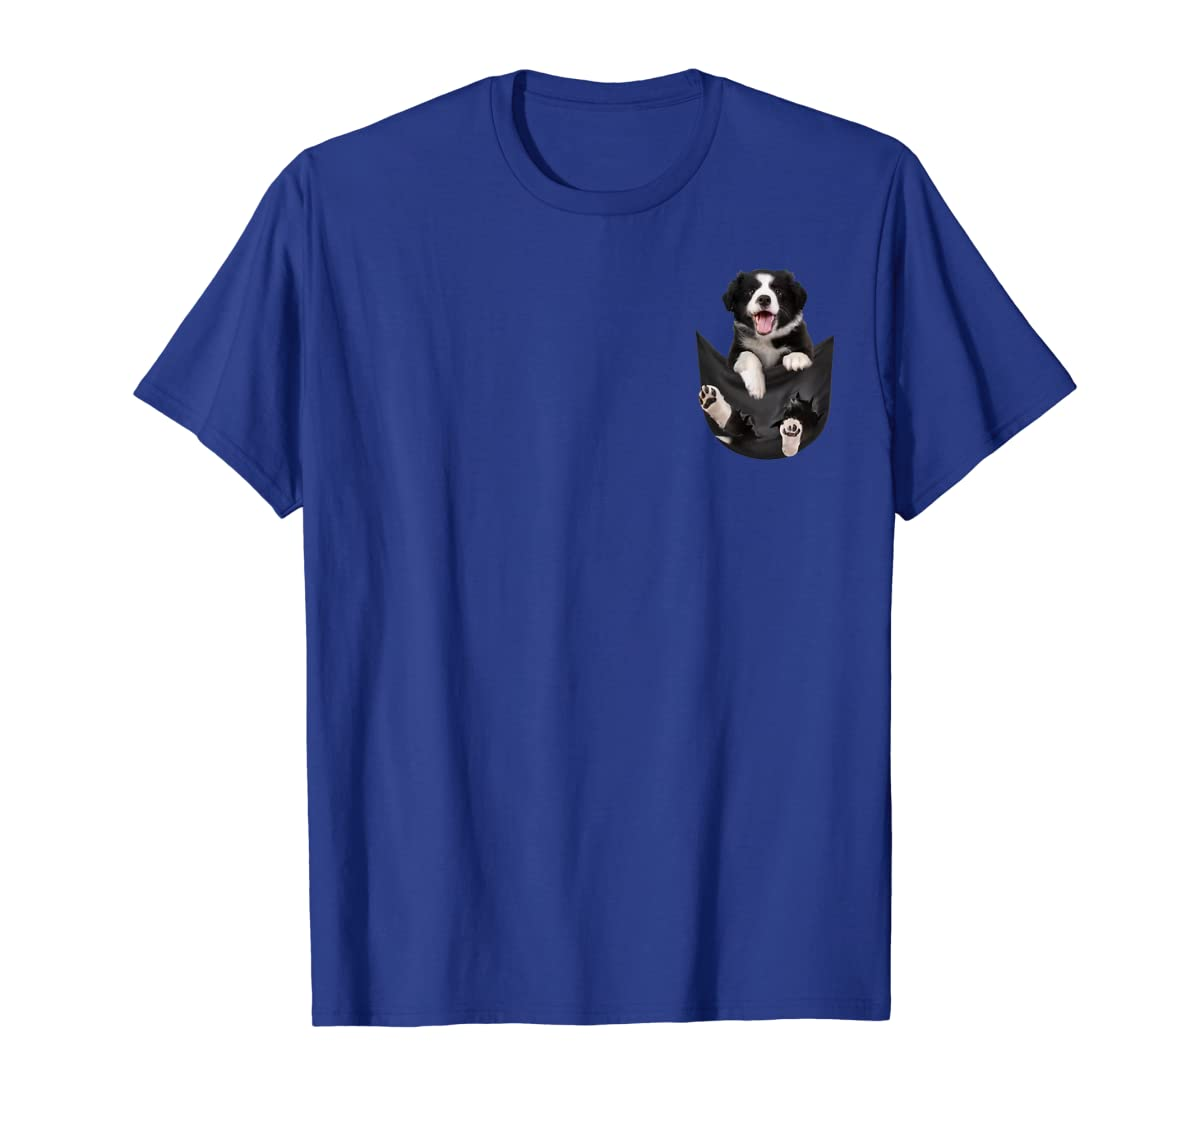 Gift dog funny cute shirt - Border Collie in pocket shirt T-Shirt-Men's T-Shirt-Royal